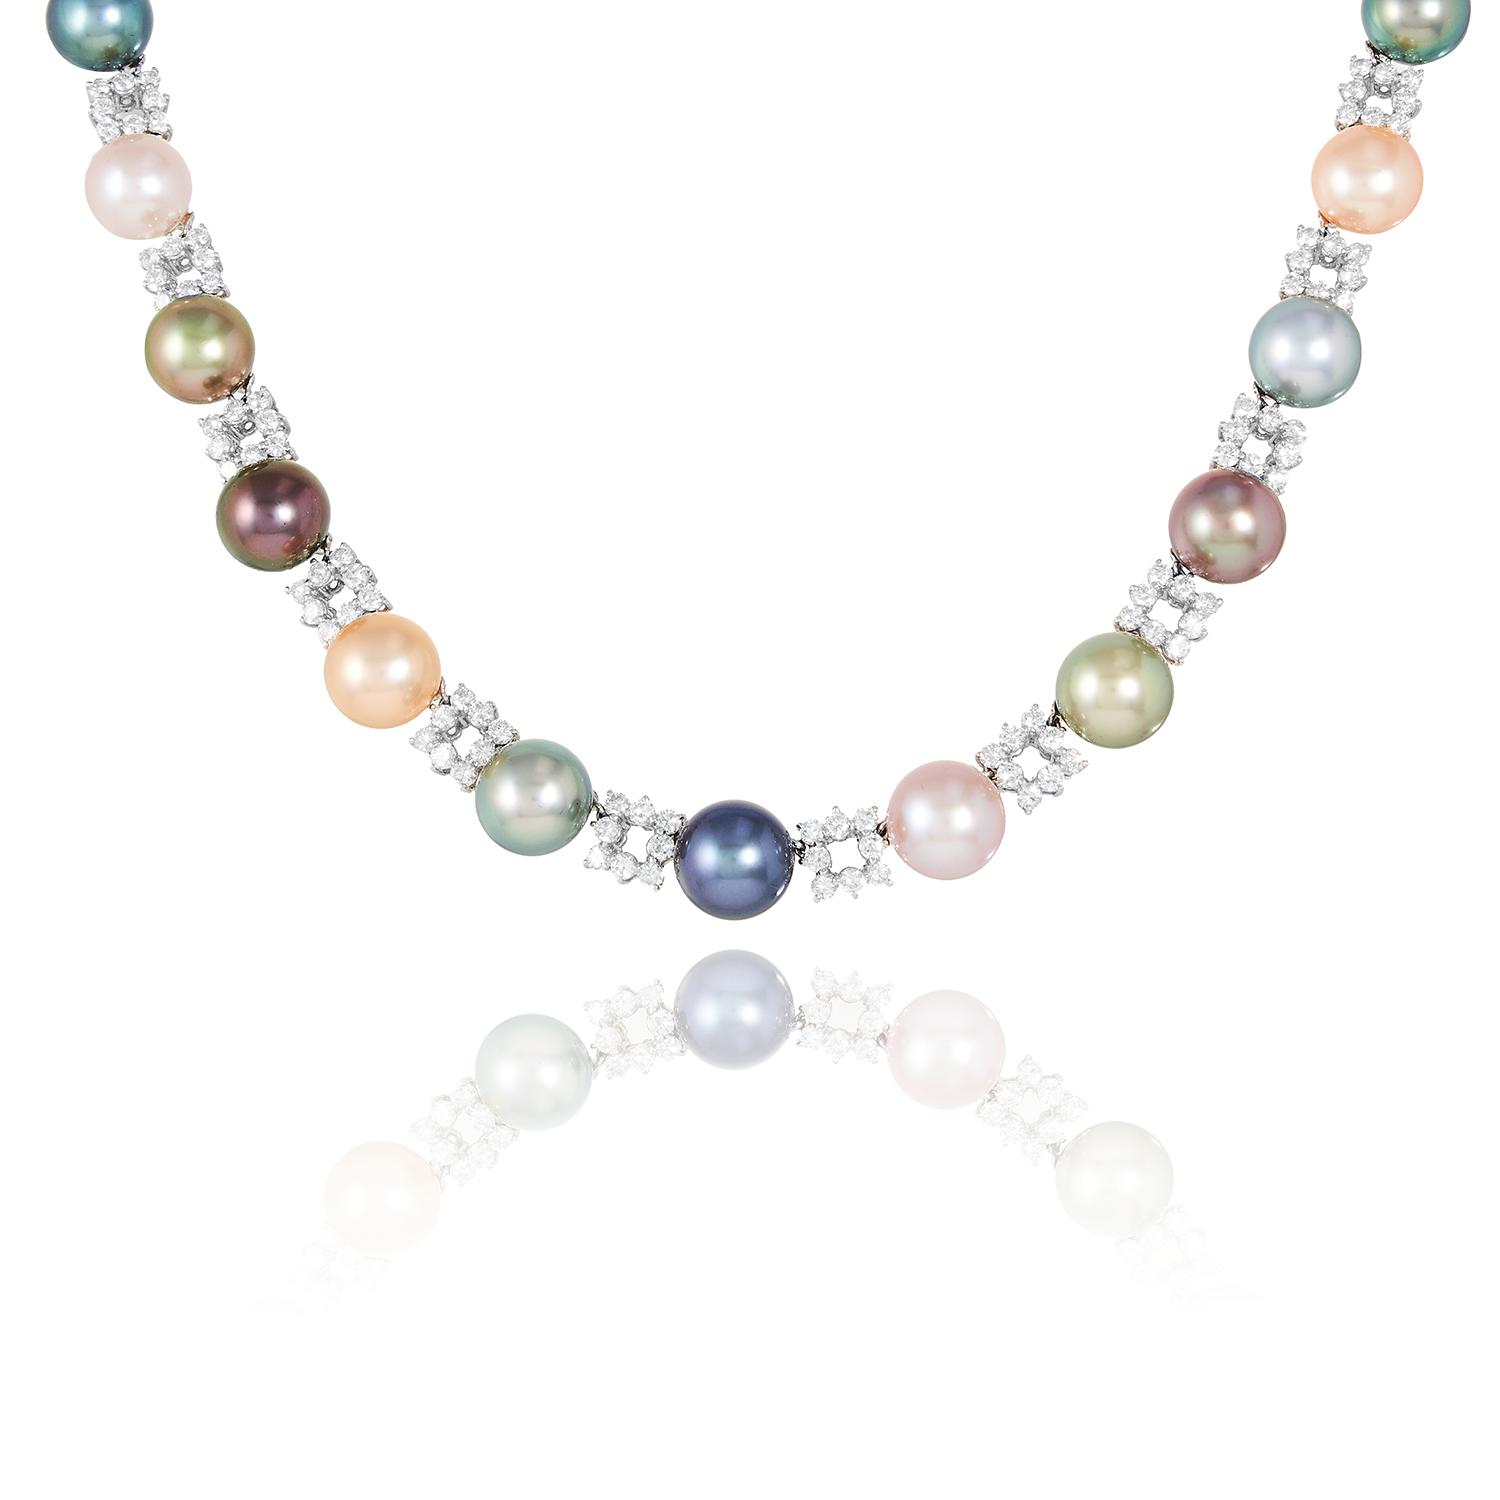 A PEARL AND DIAMOND NECKLACE, SCHOEFFEL in 18ct white gold, comprising a single row of alternating